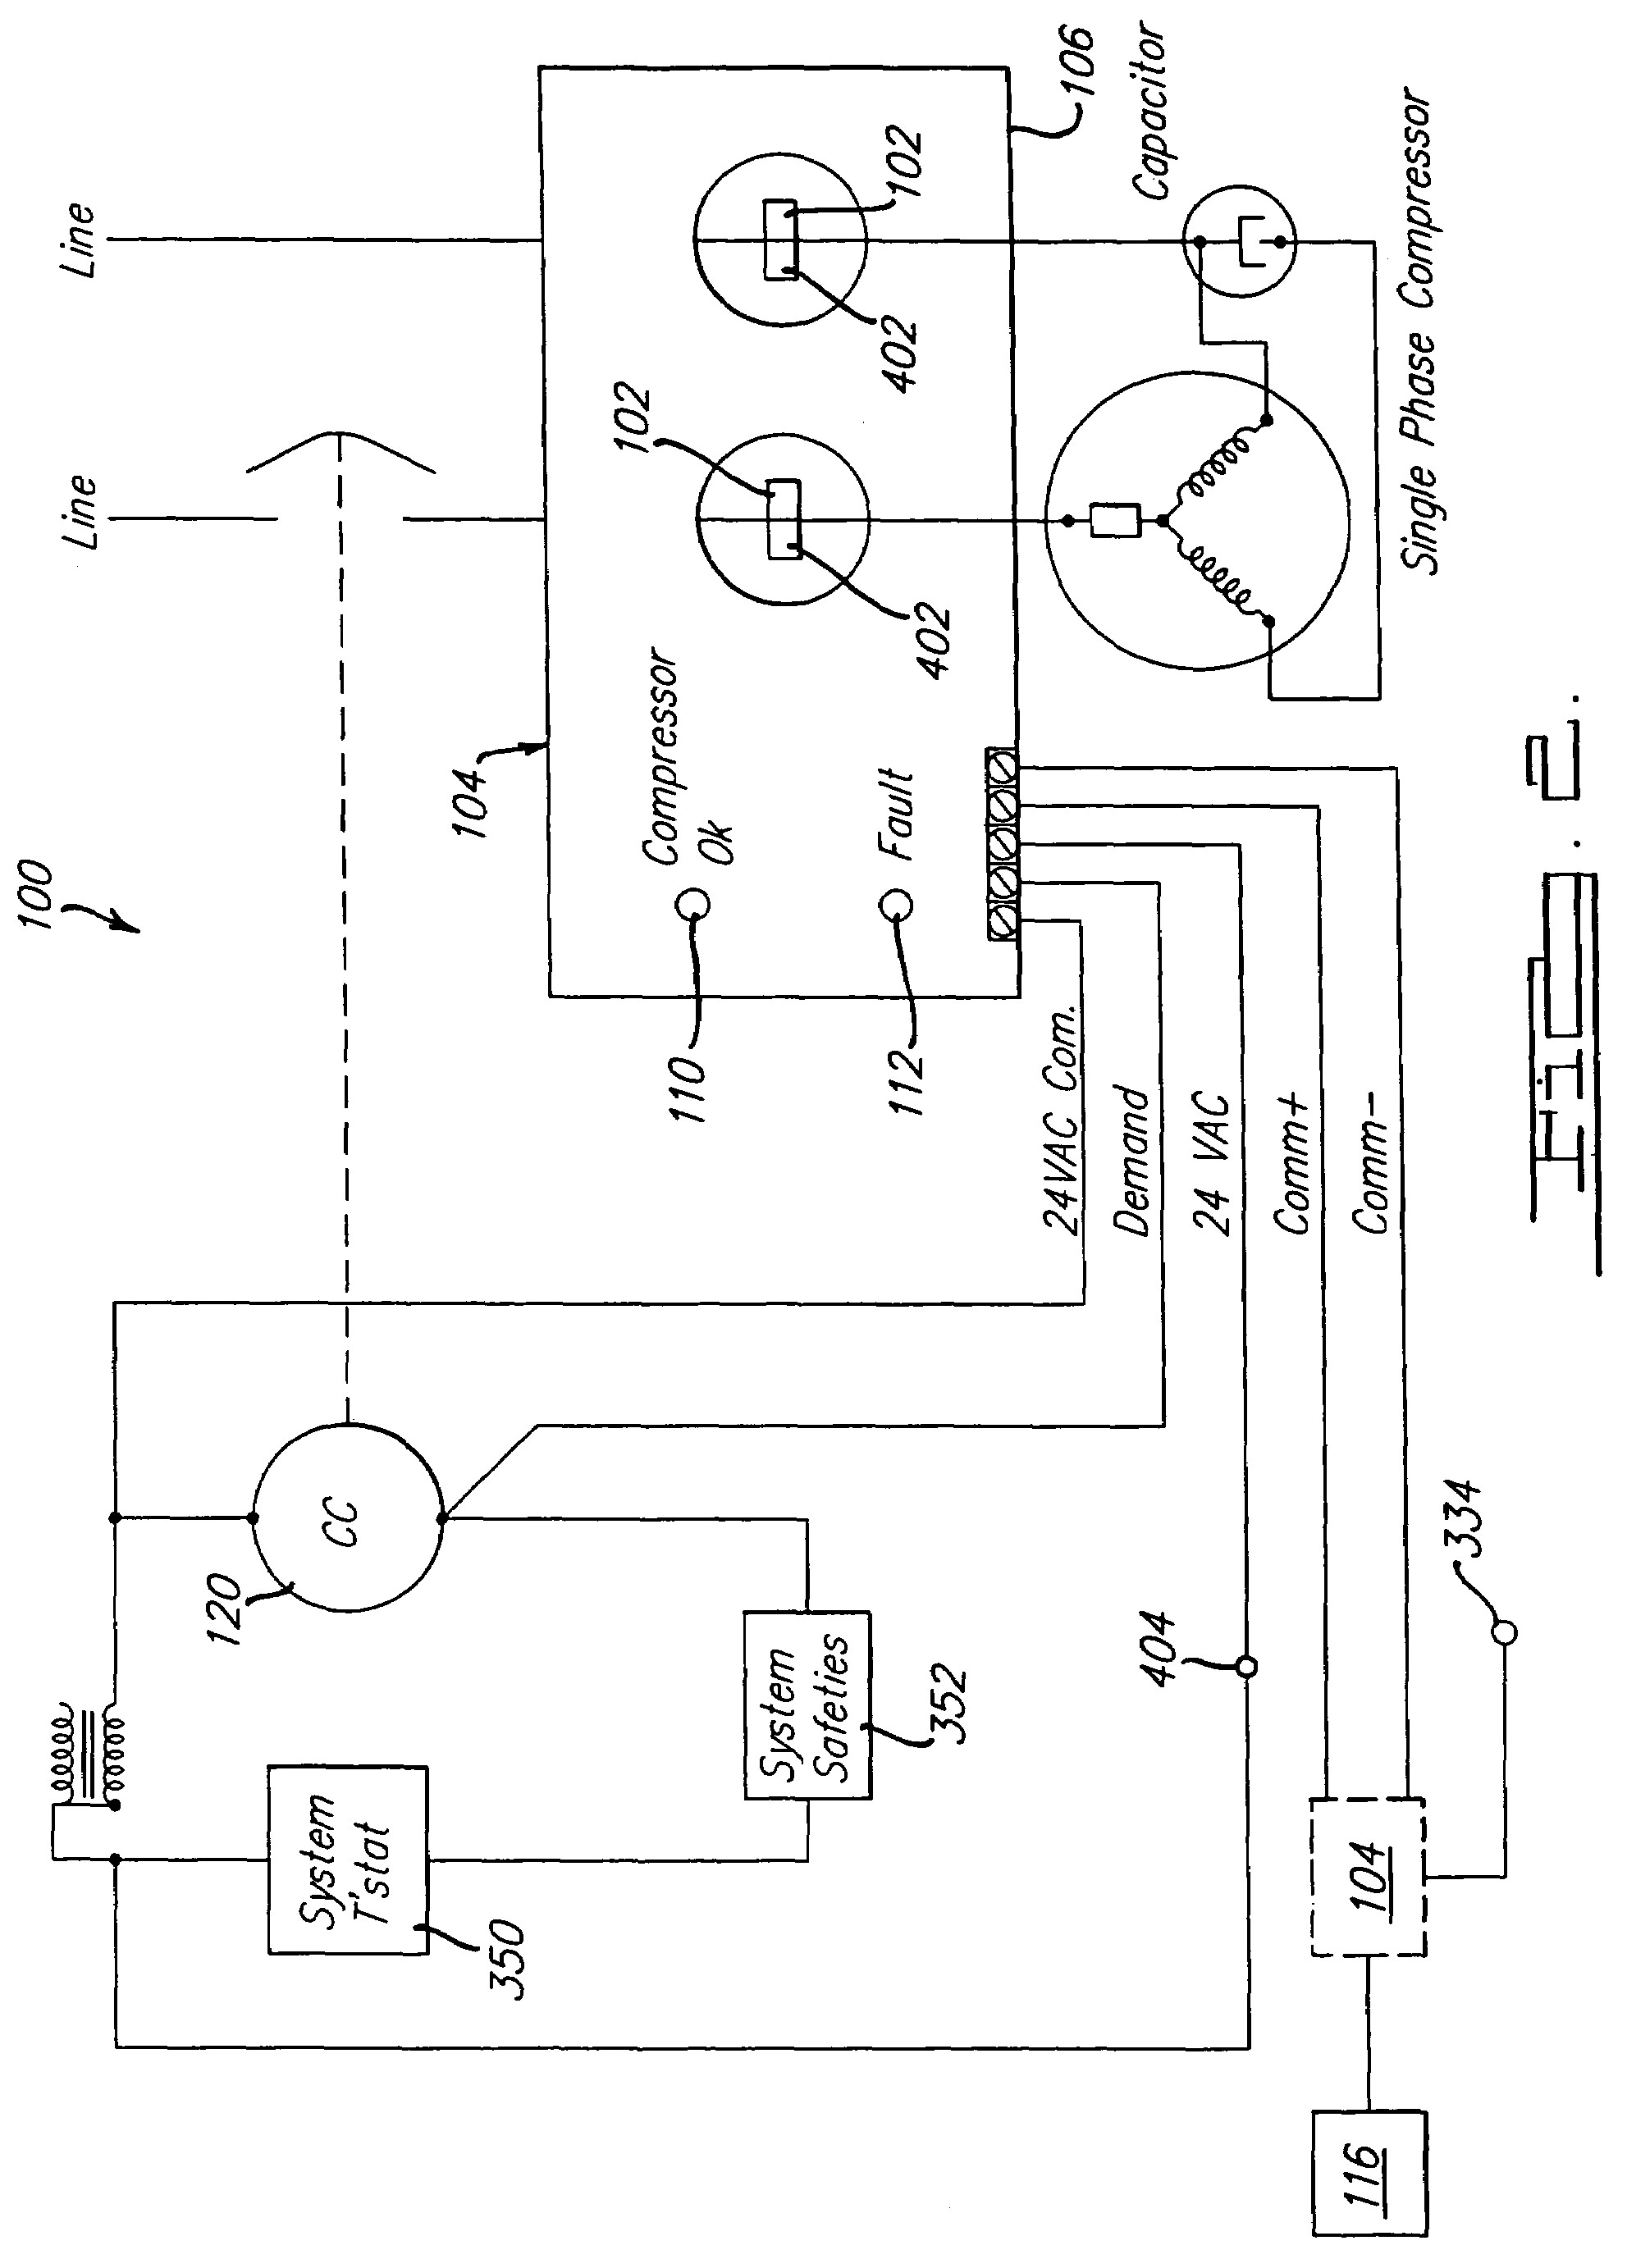 Ac Contactor Wiring Diagram Image All About And Diagrams Copeland Pressor Hvac Beauteous In